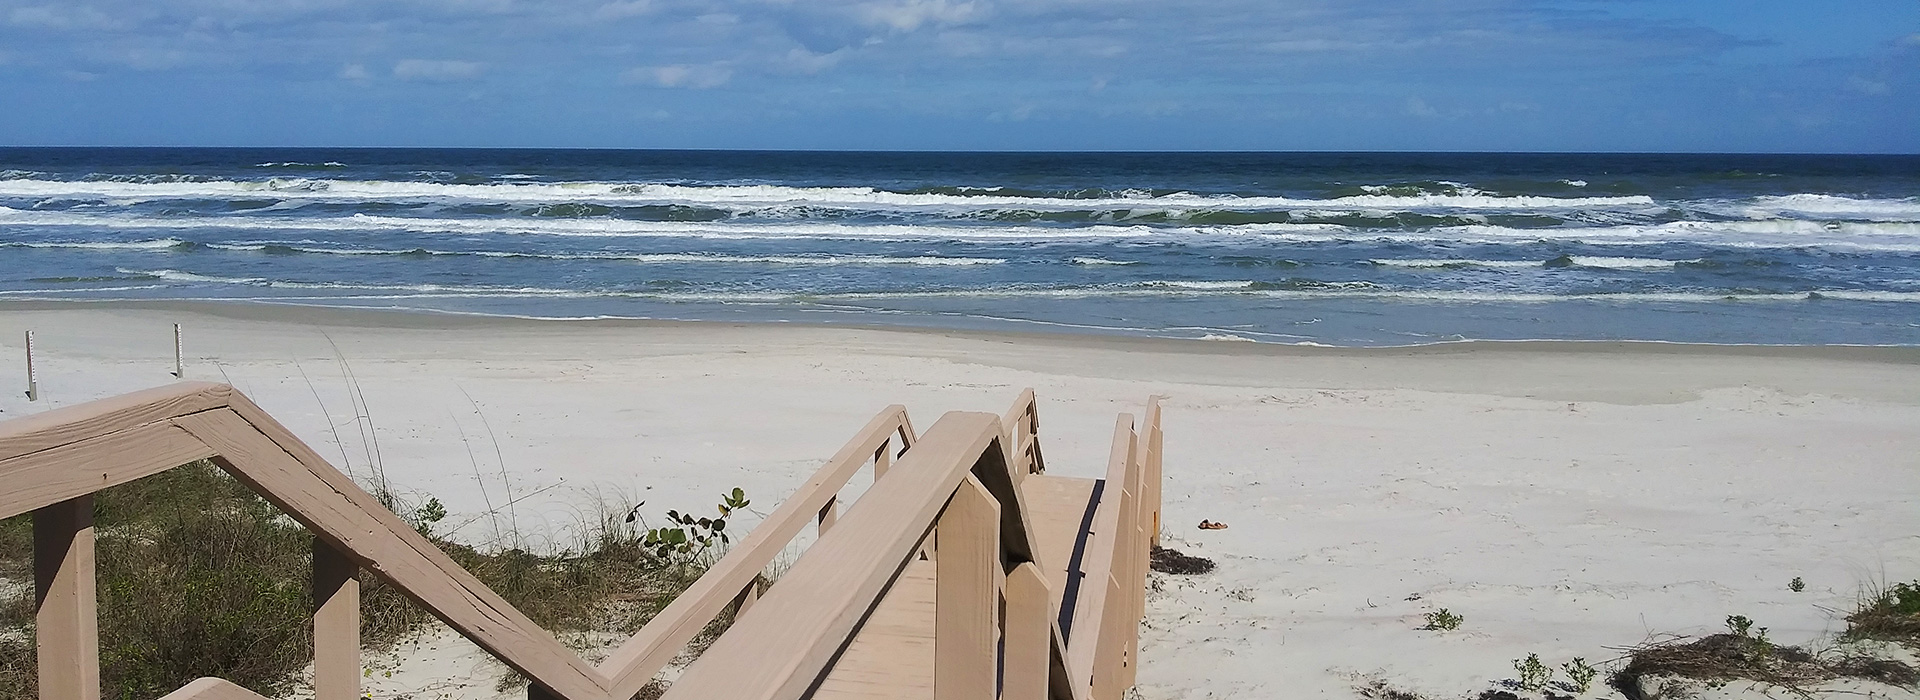 Boardwalk for accessing the beach